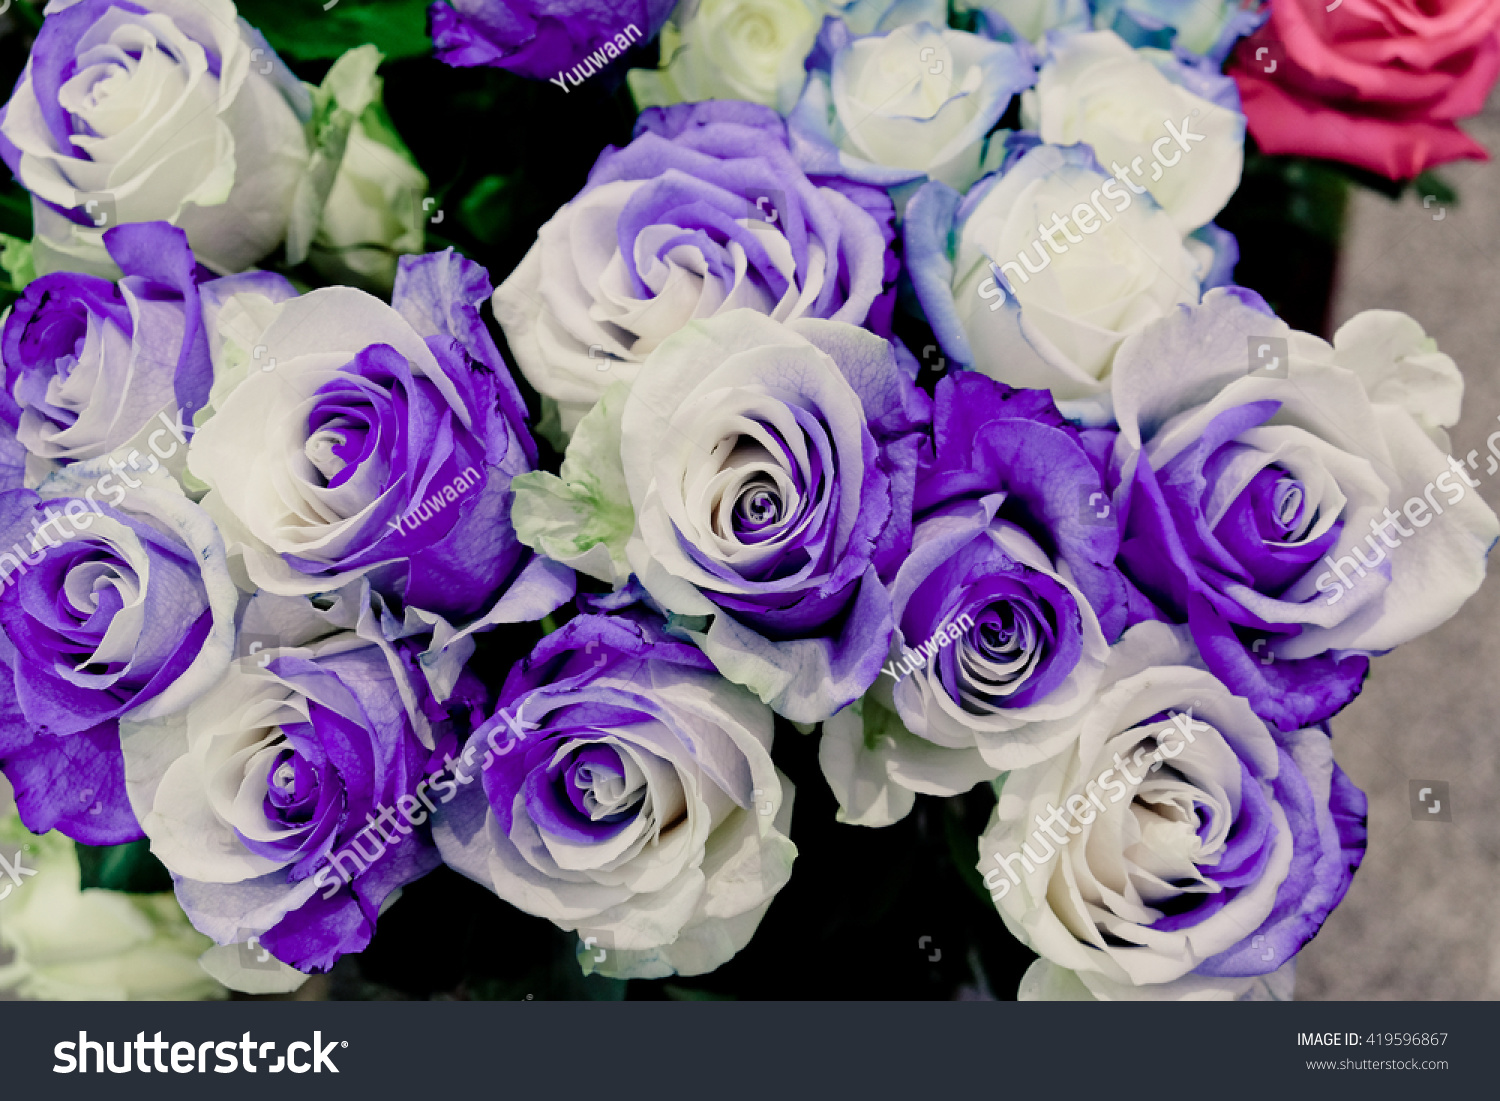 Two-tone rose hair flowers |Two Tone Lavender Roses